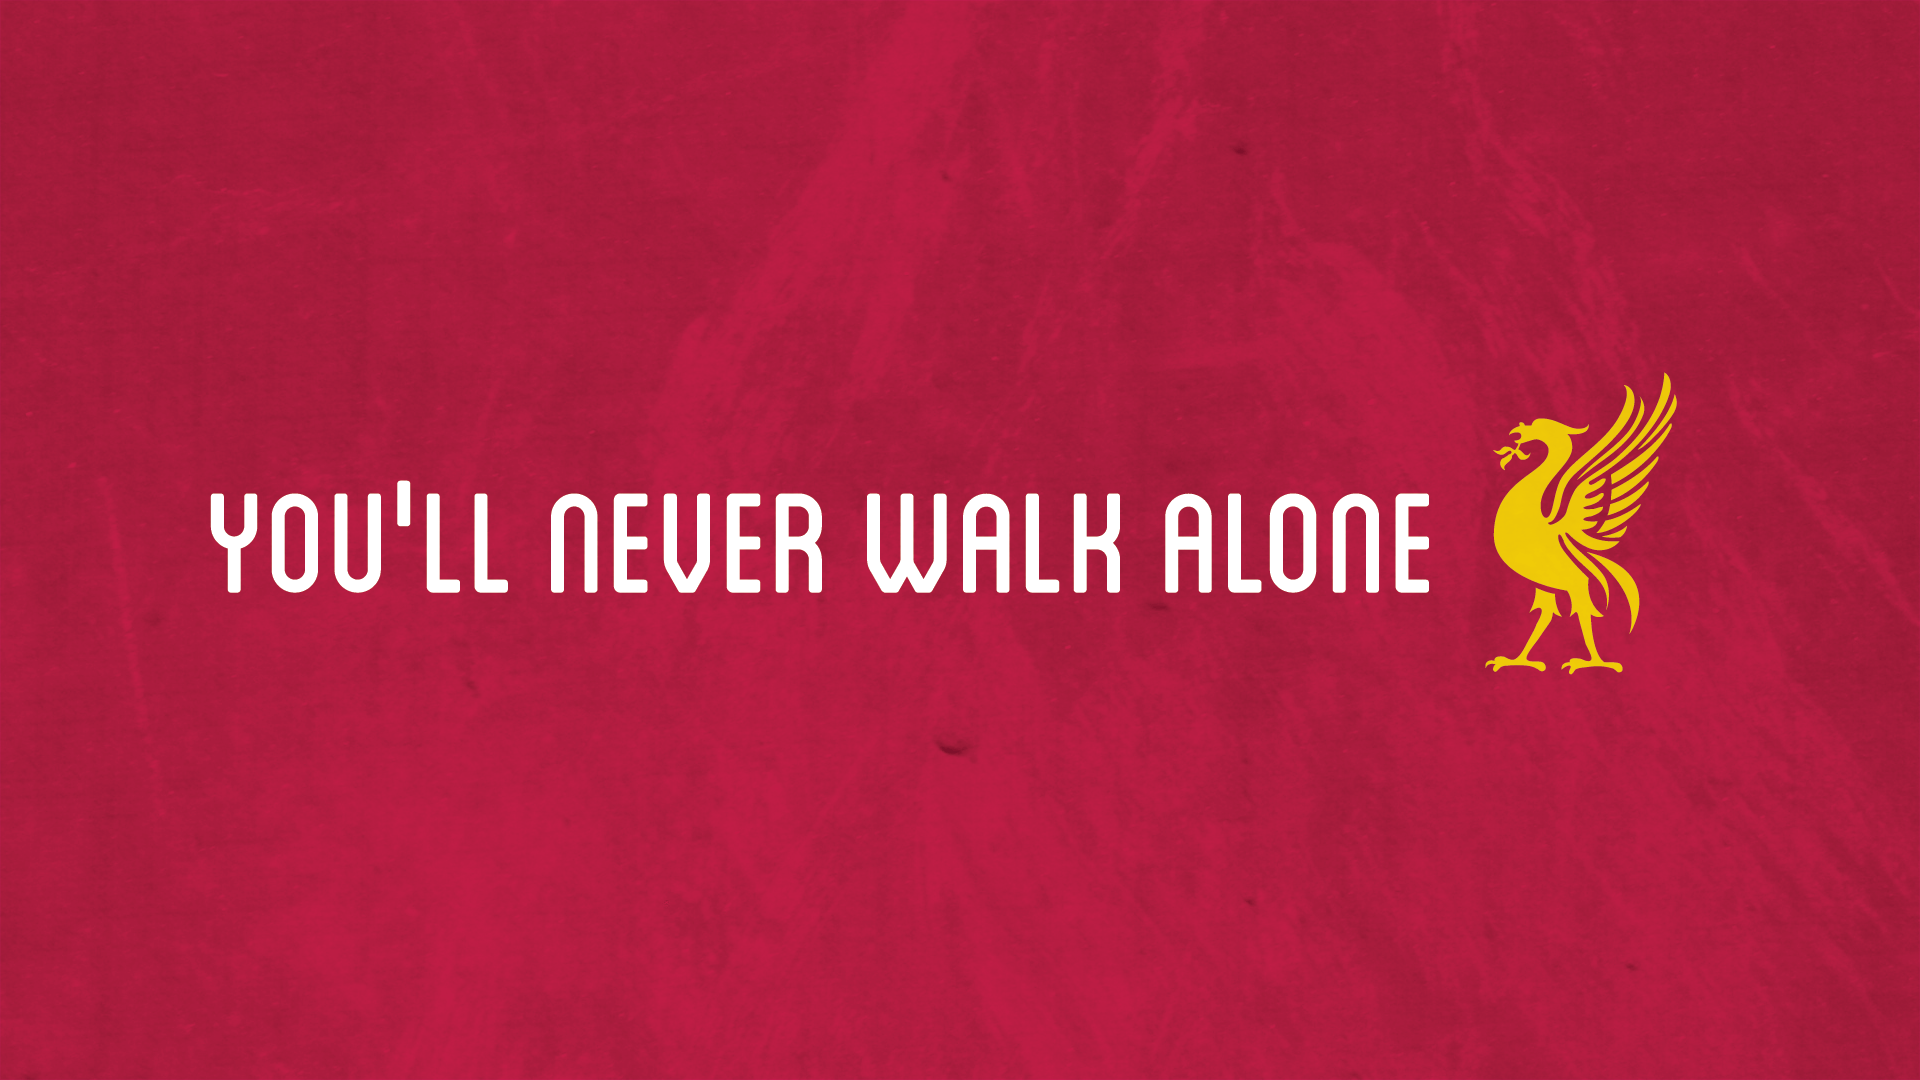 Liverpool Wallpapers 2017 Wallpaper Cave